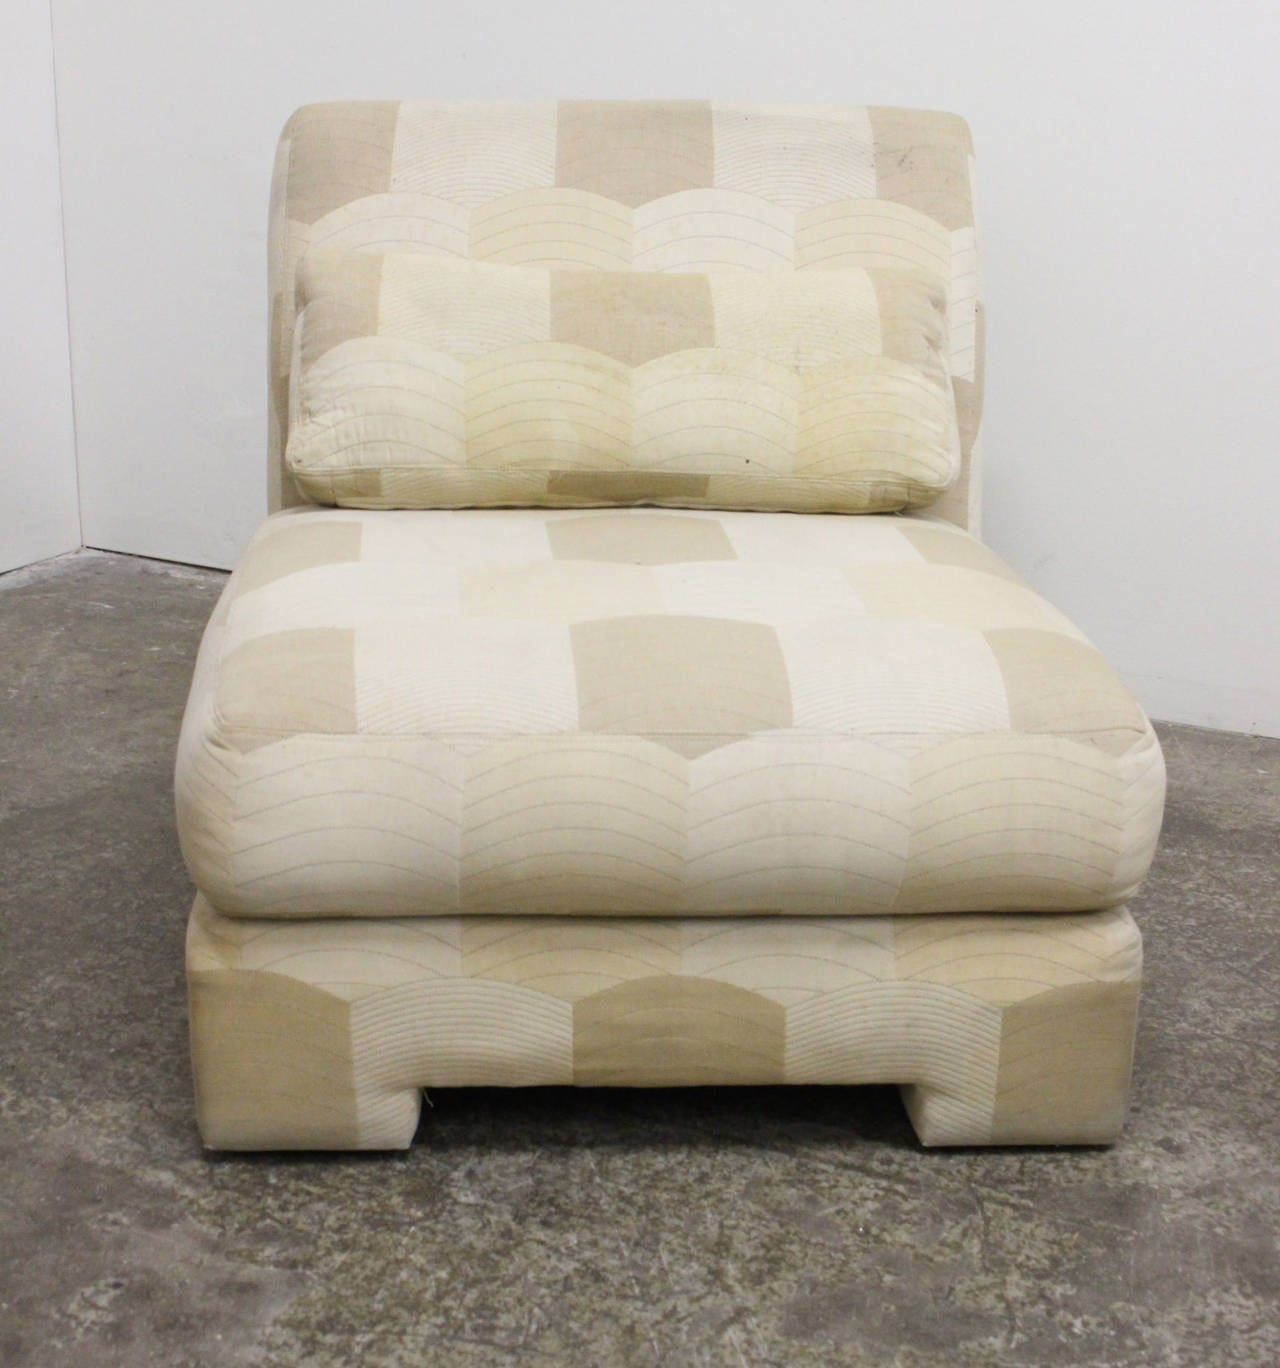 Pair of Slipper Lounge Chairs by Milo Baughman for Thayer Coggin 4